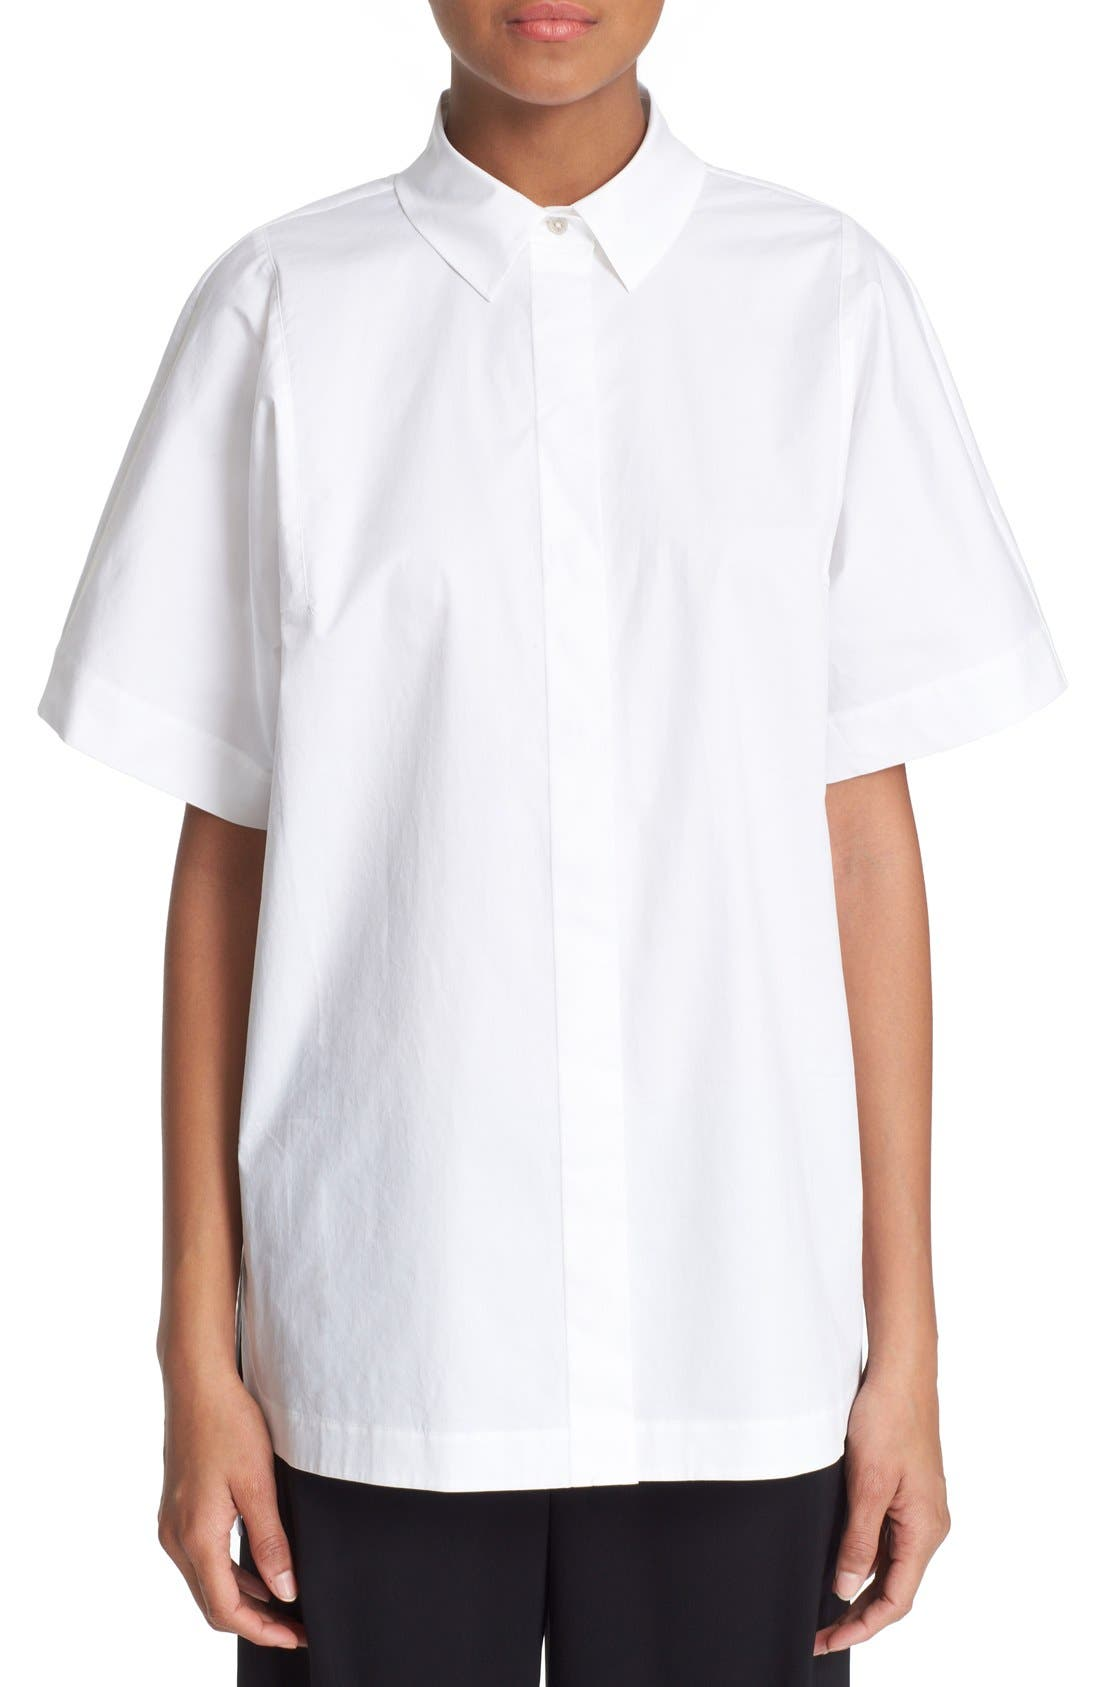 Alternate Image 1 Selected - DKNY Short Sleeve Cotton Shirt